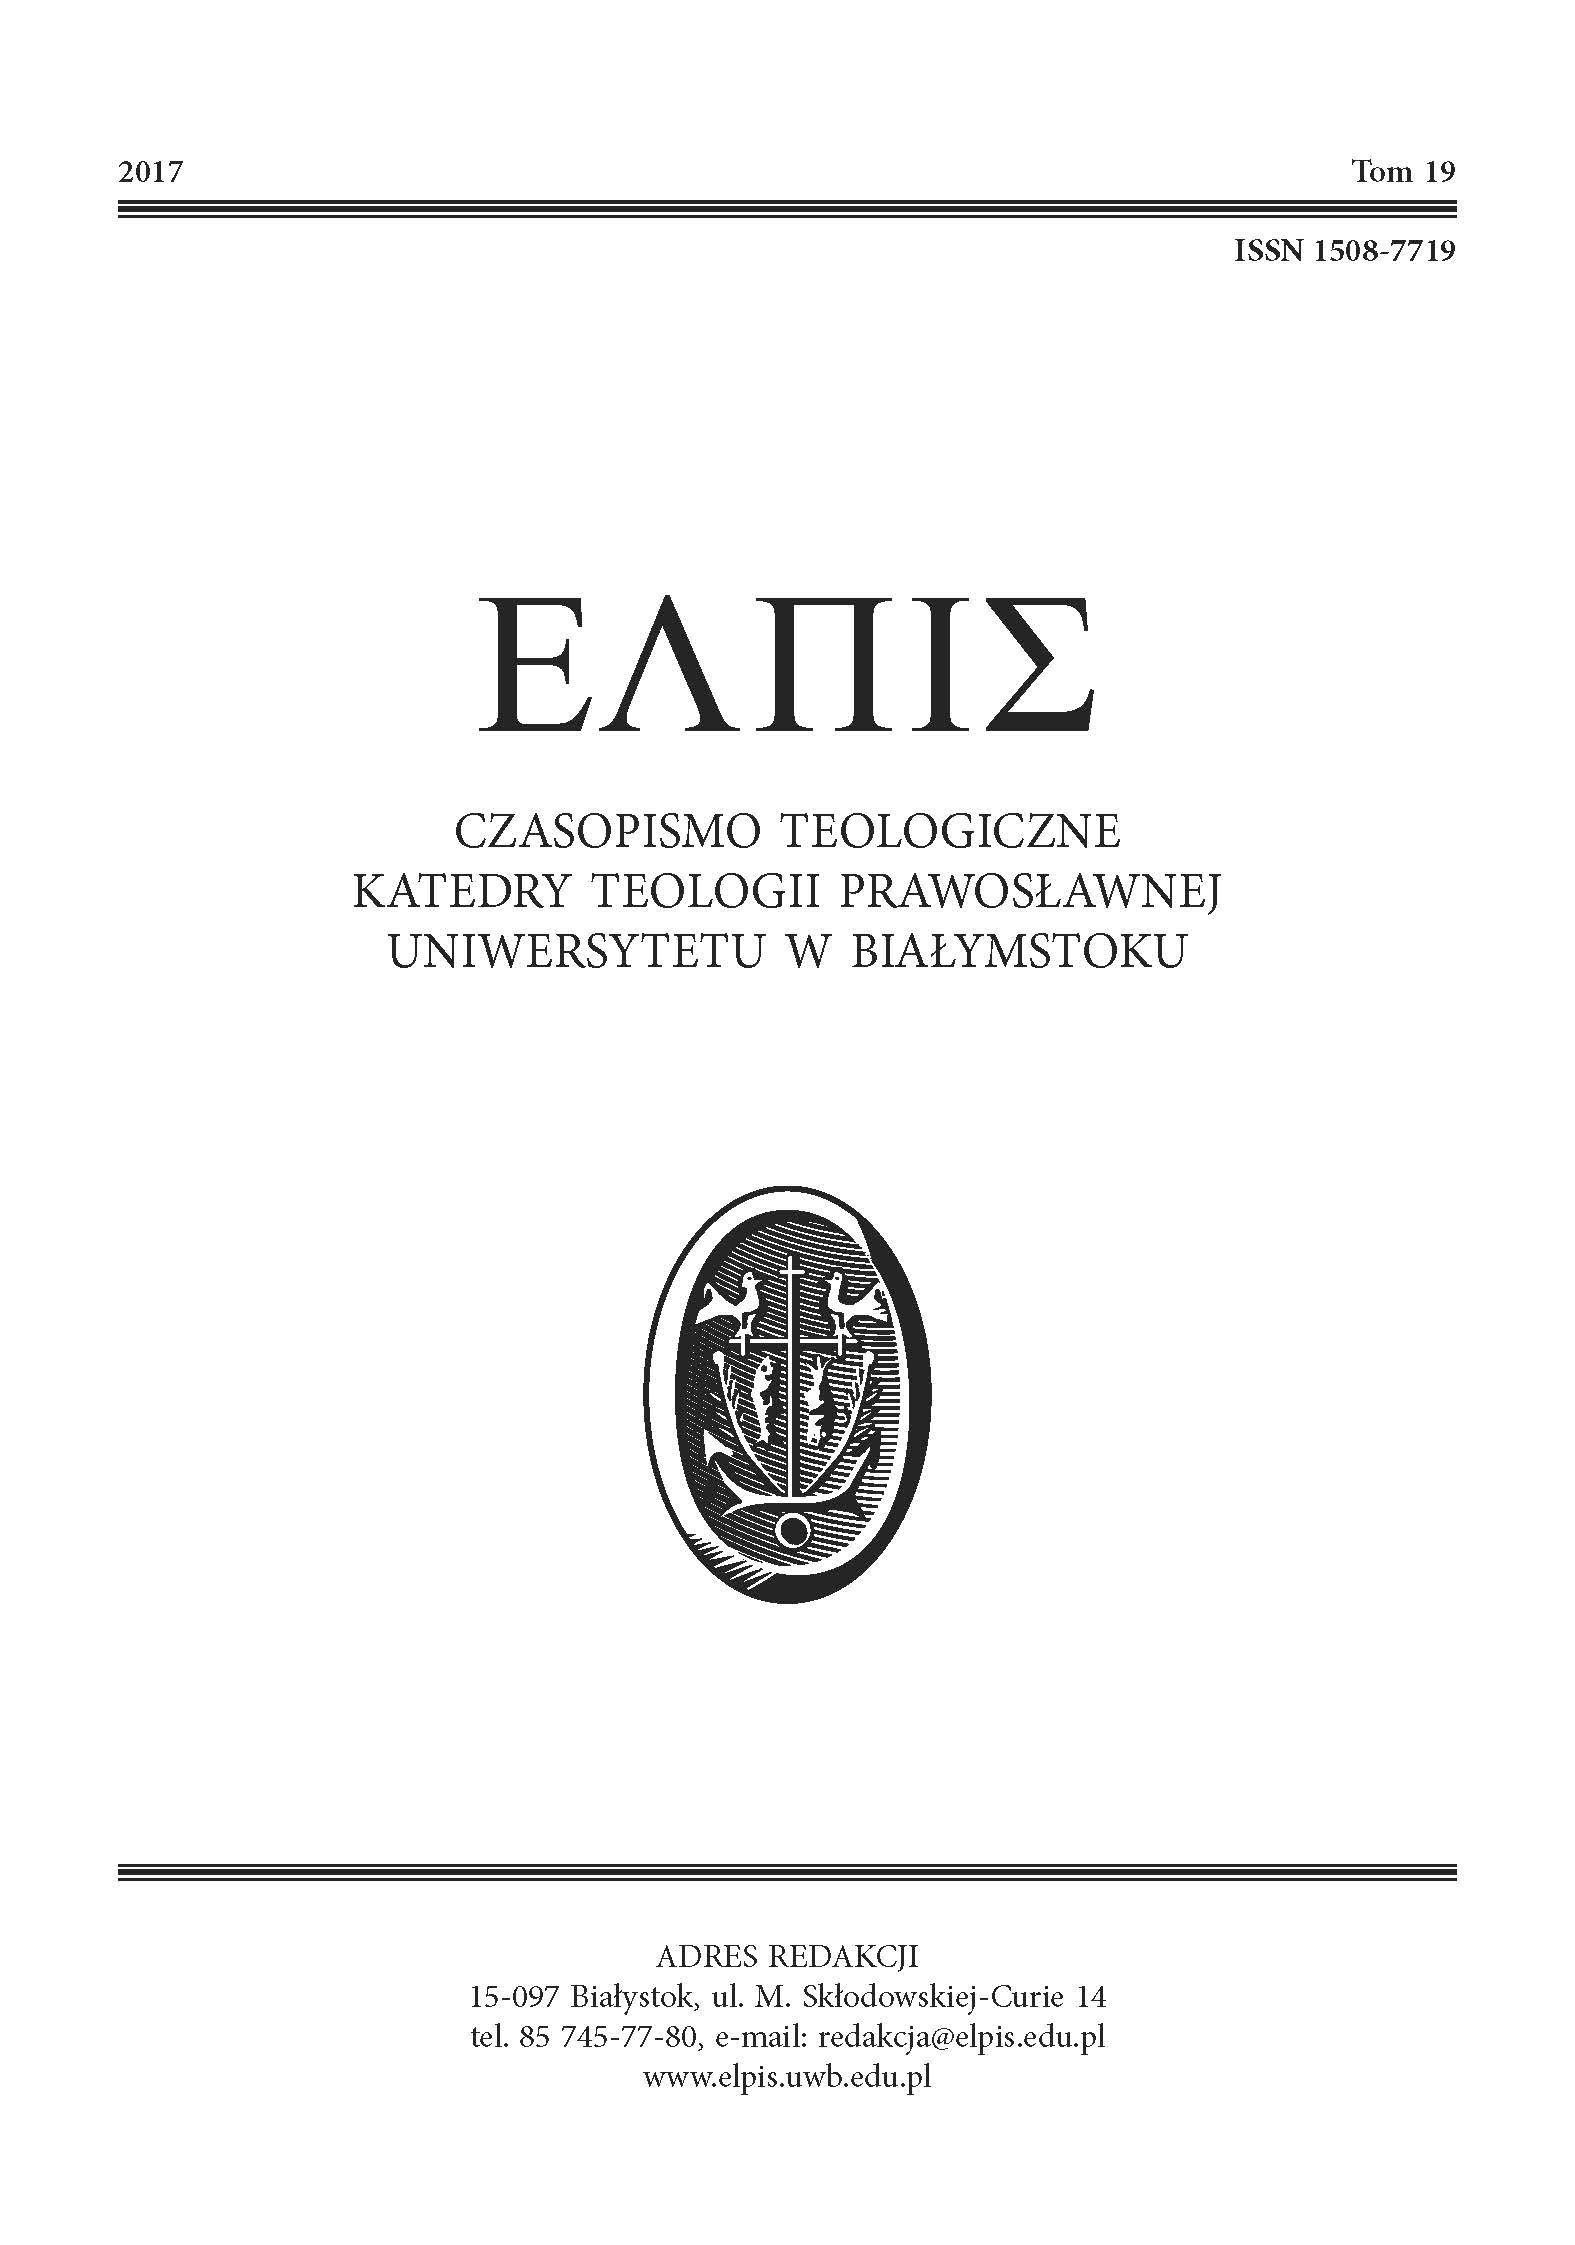 Cultural relations of the Suprasl monastery with Serbian culture in the sixteenth century Cover Image